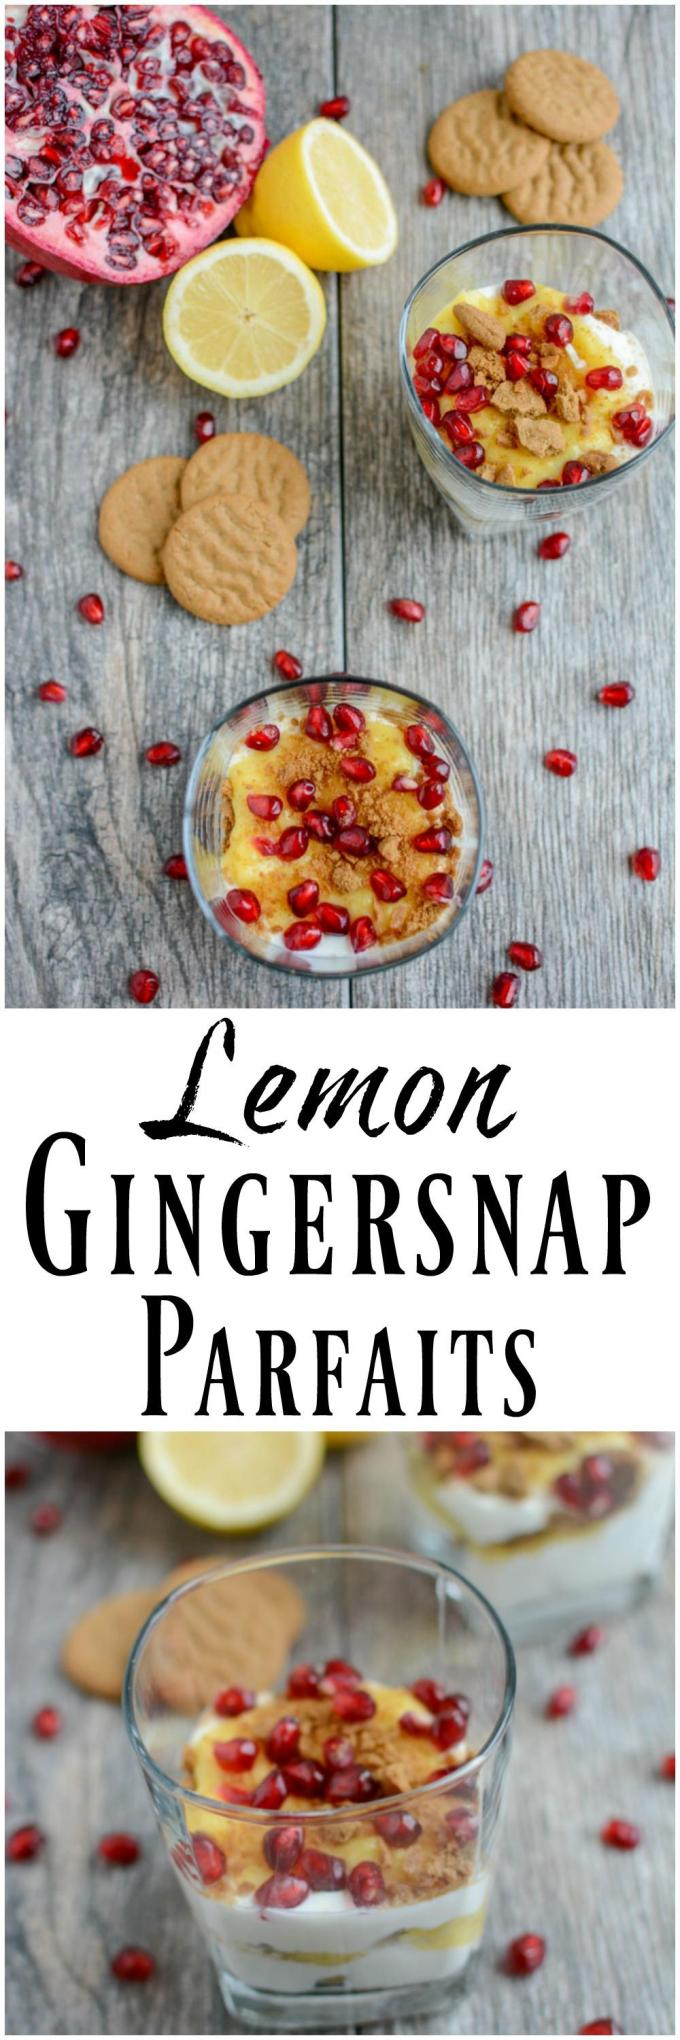 These Lemon Gingersnap Parfaits are the perfect holiday dessert recipe. Made with just a few simple ingredients, they're easy to assemble and oh so festive!